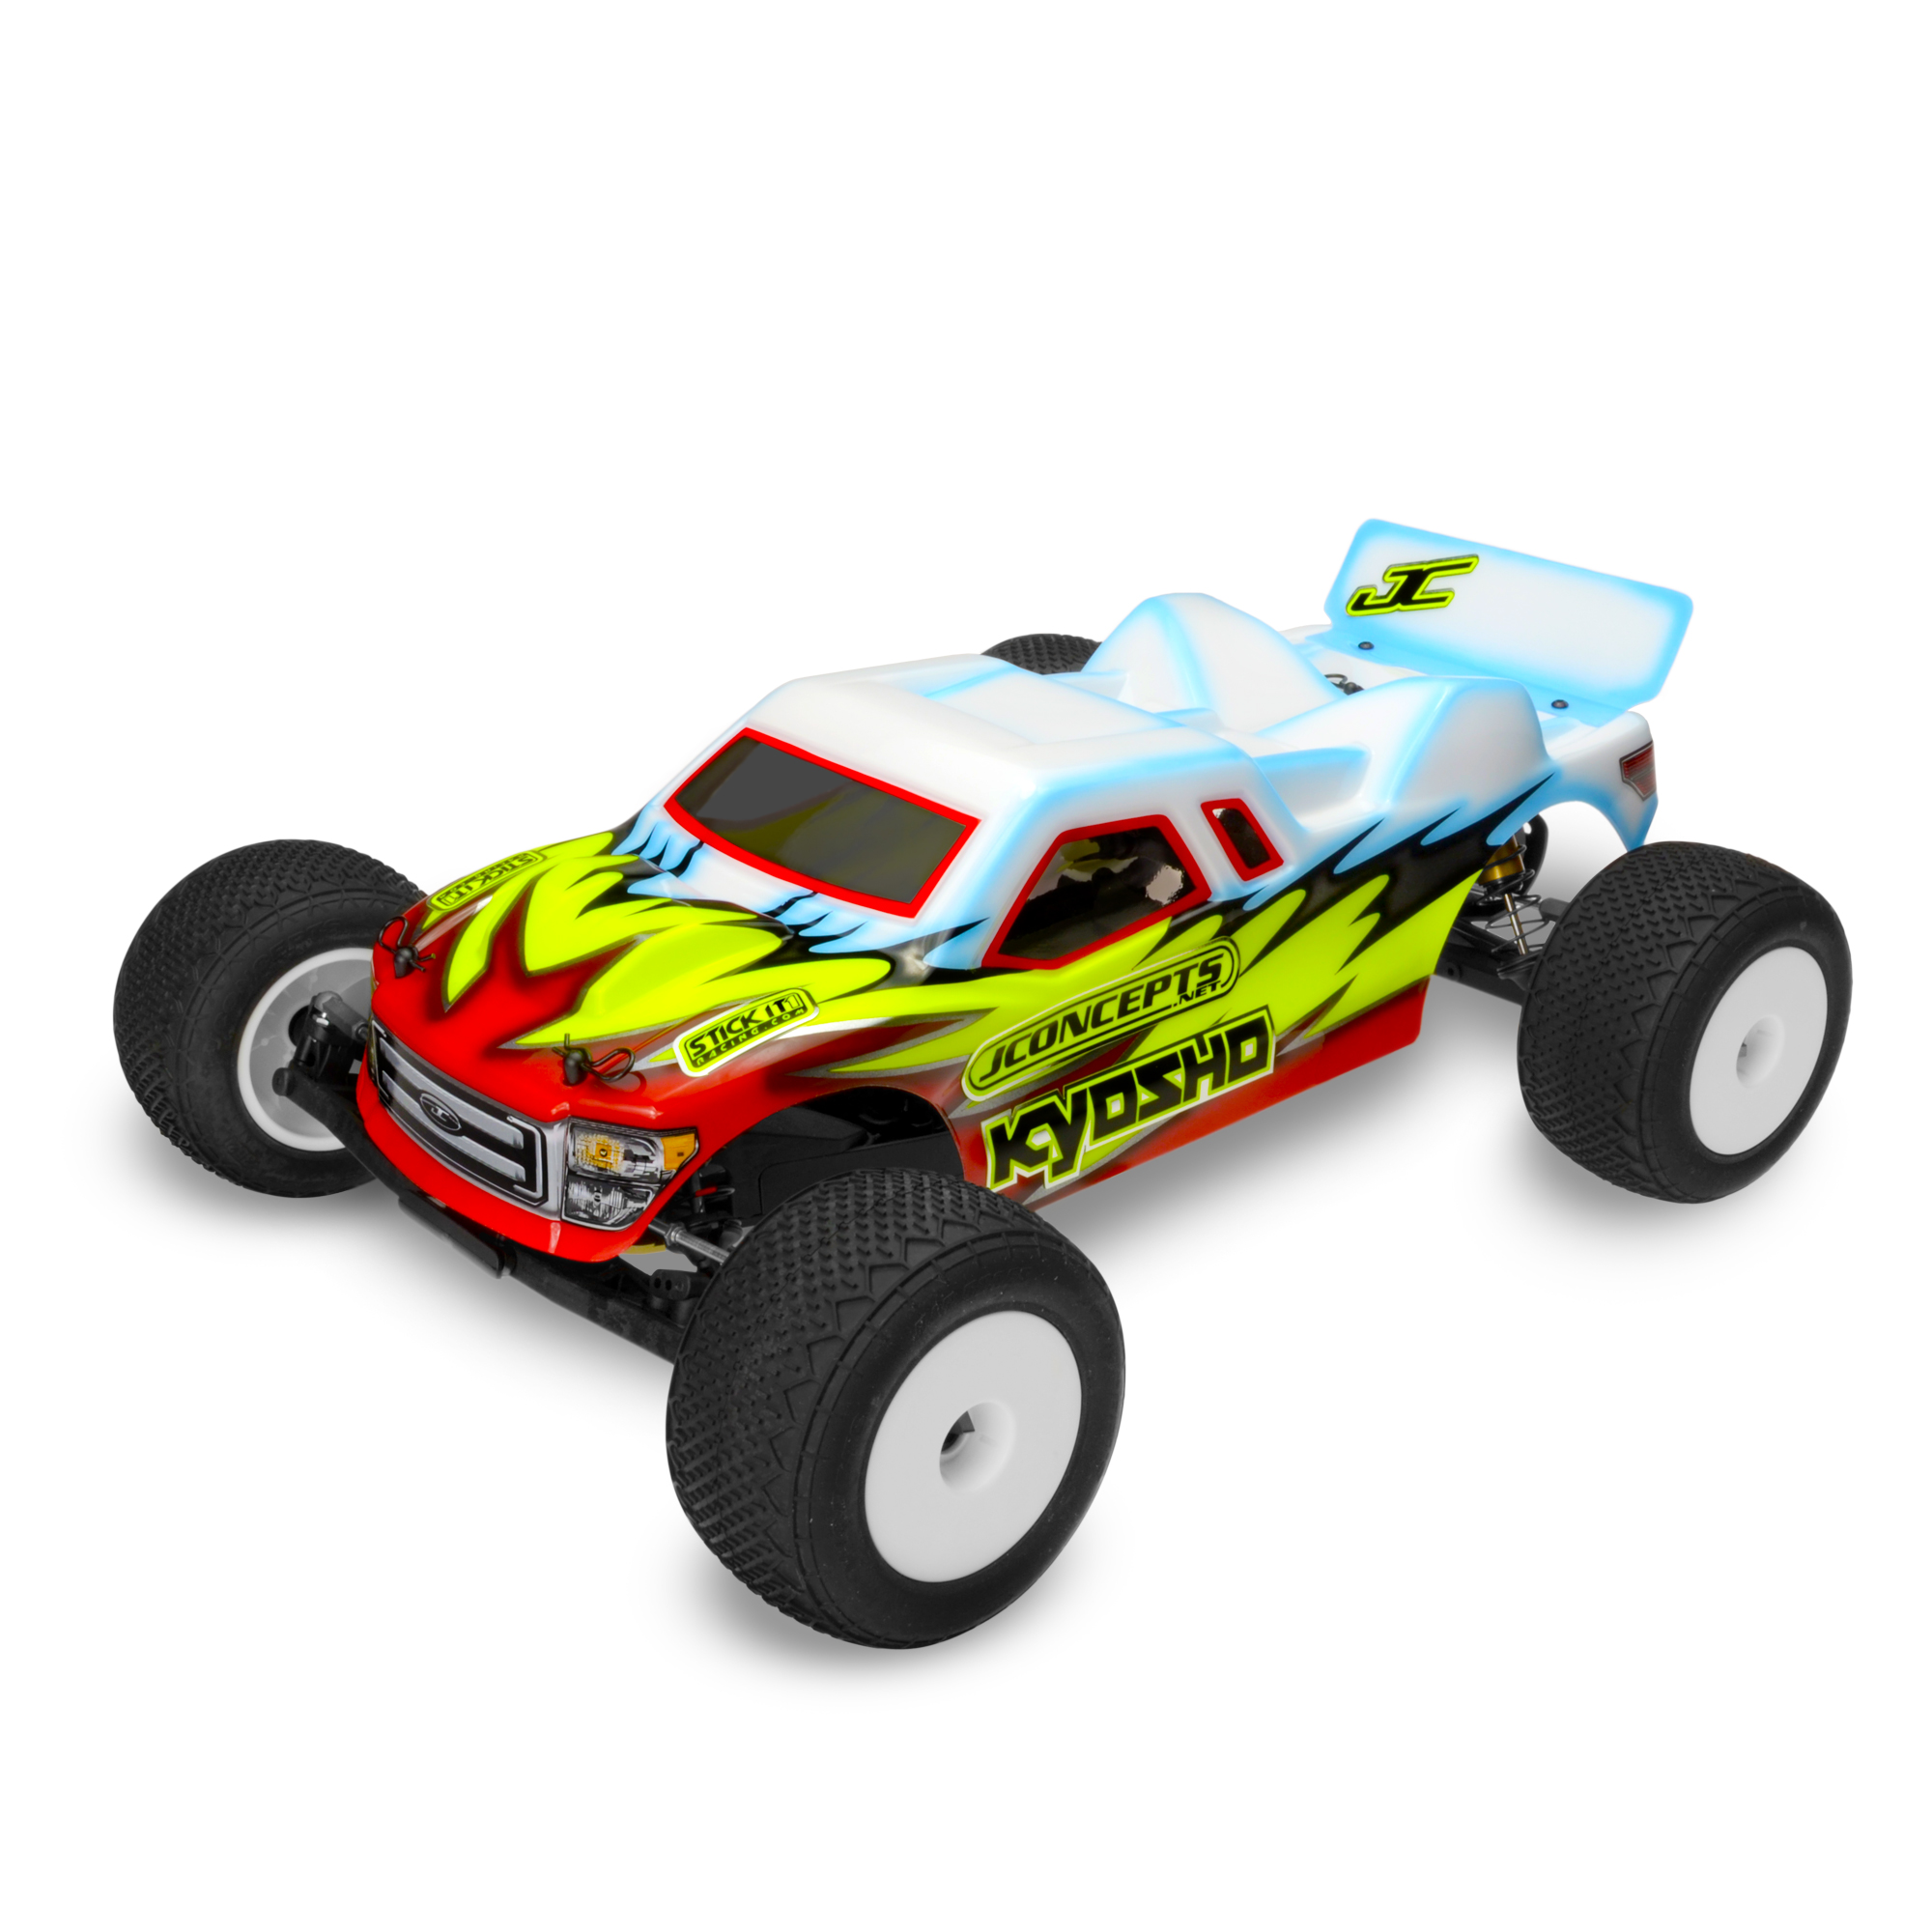 Product Update – Finnisher Kyosho RT6 RM